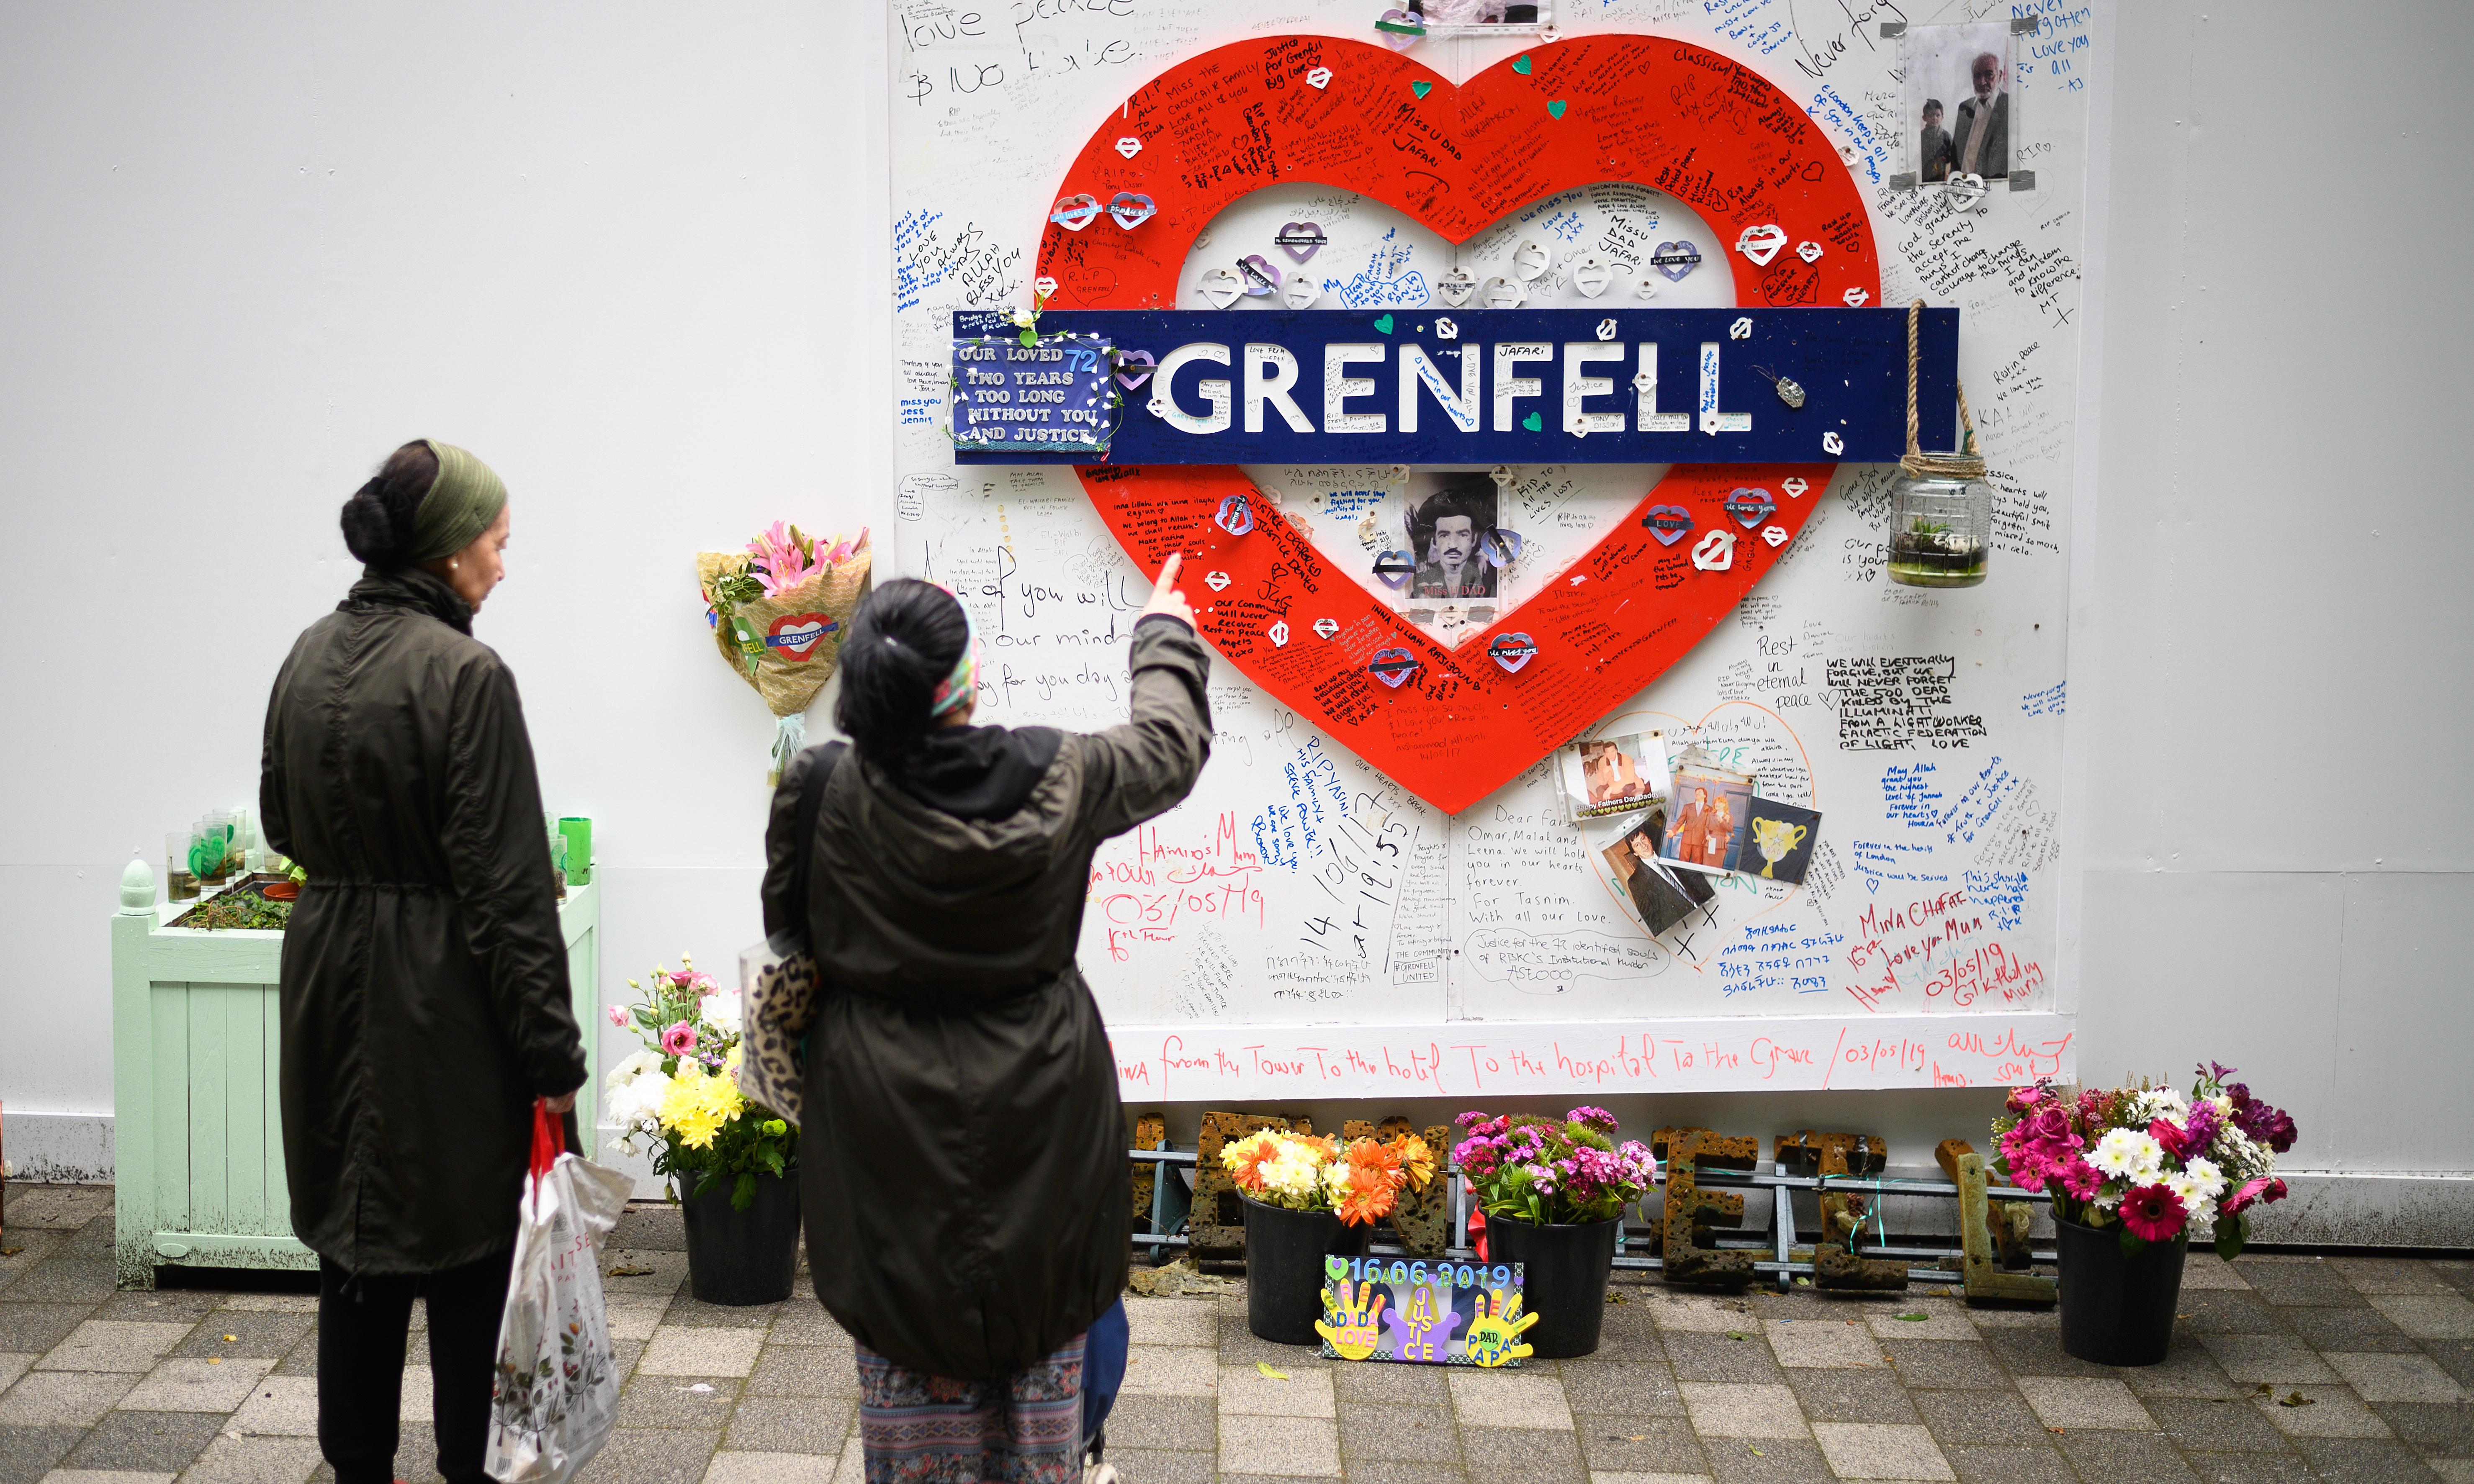 Grenfell adult college saved with £32m government bailout